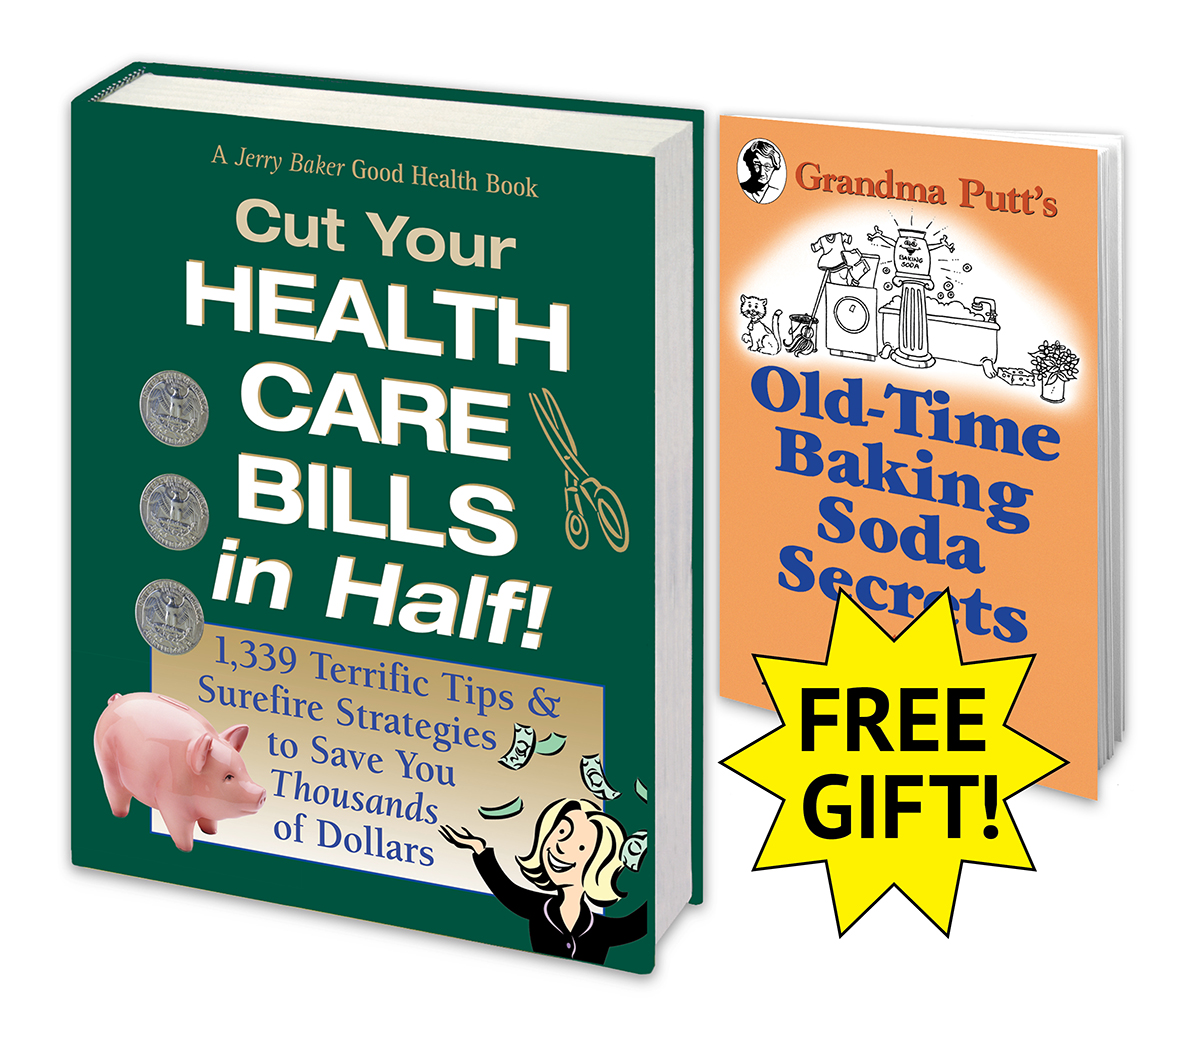 Cut Your Health Care Bills in Half